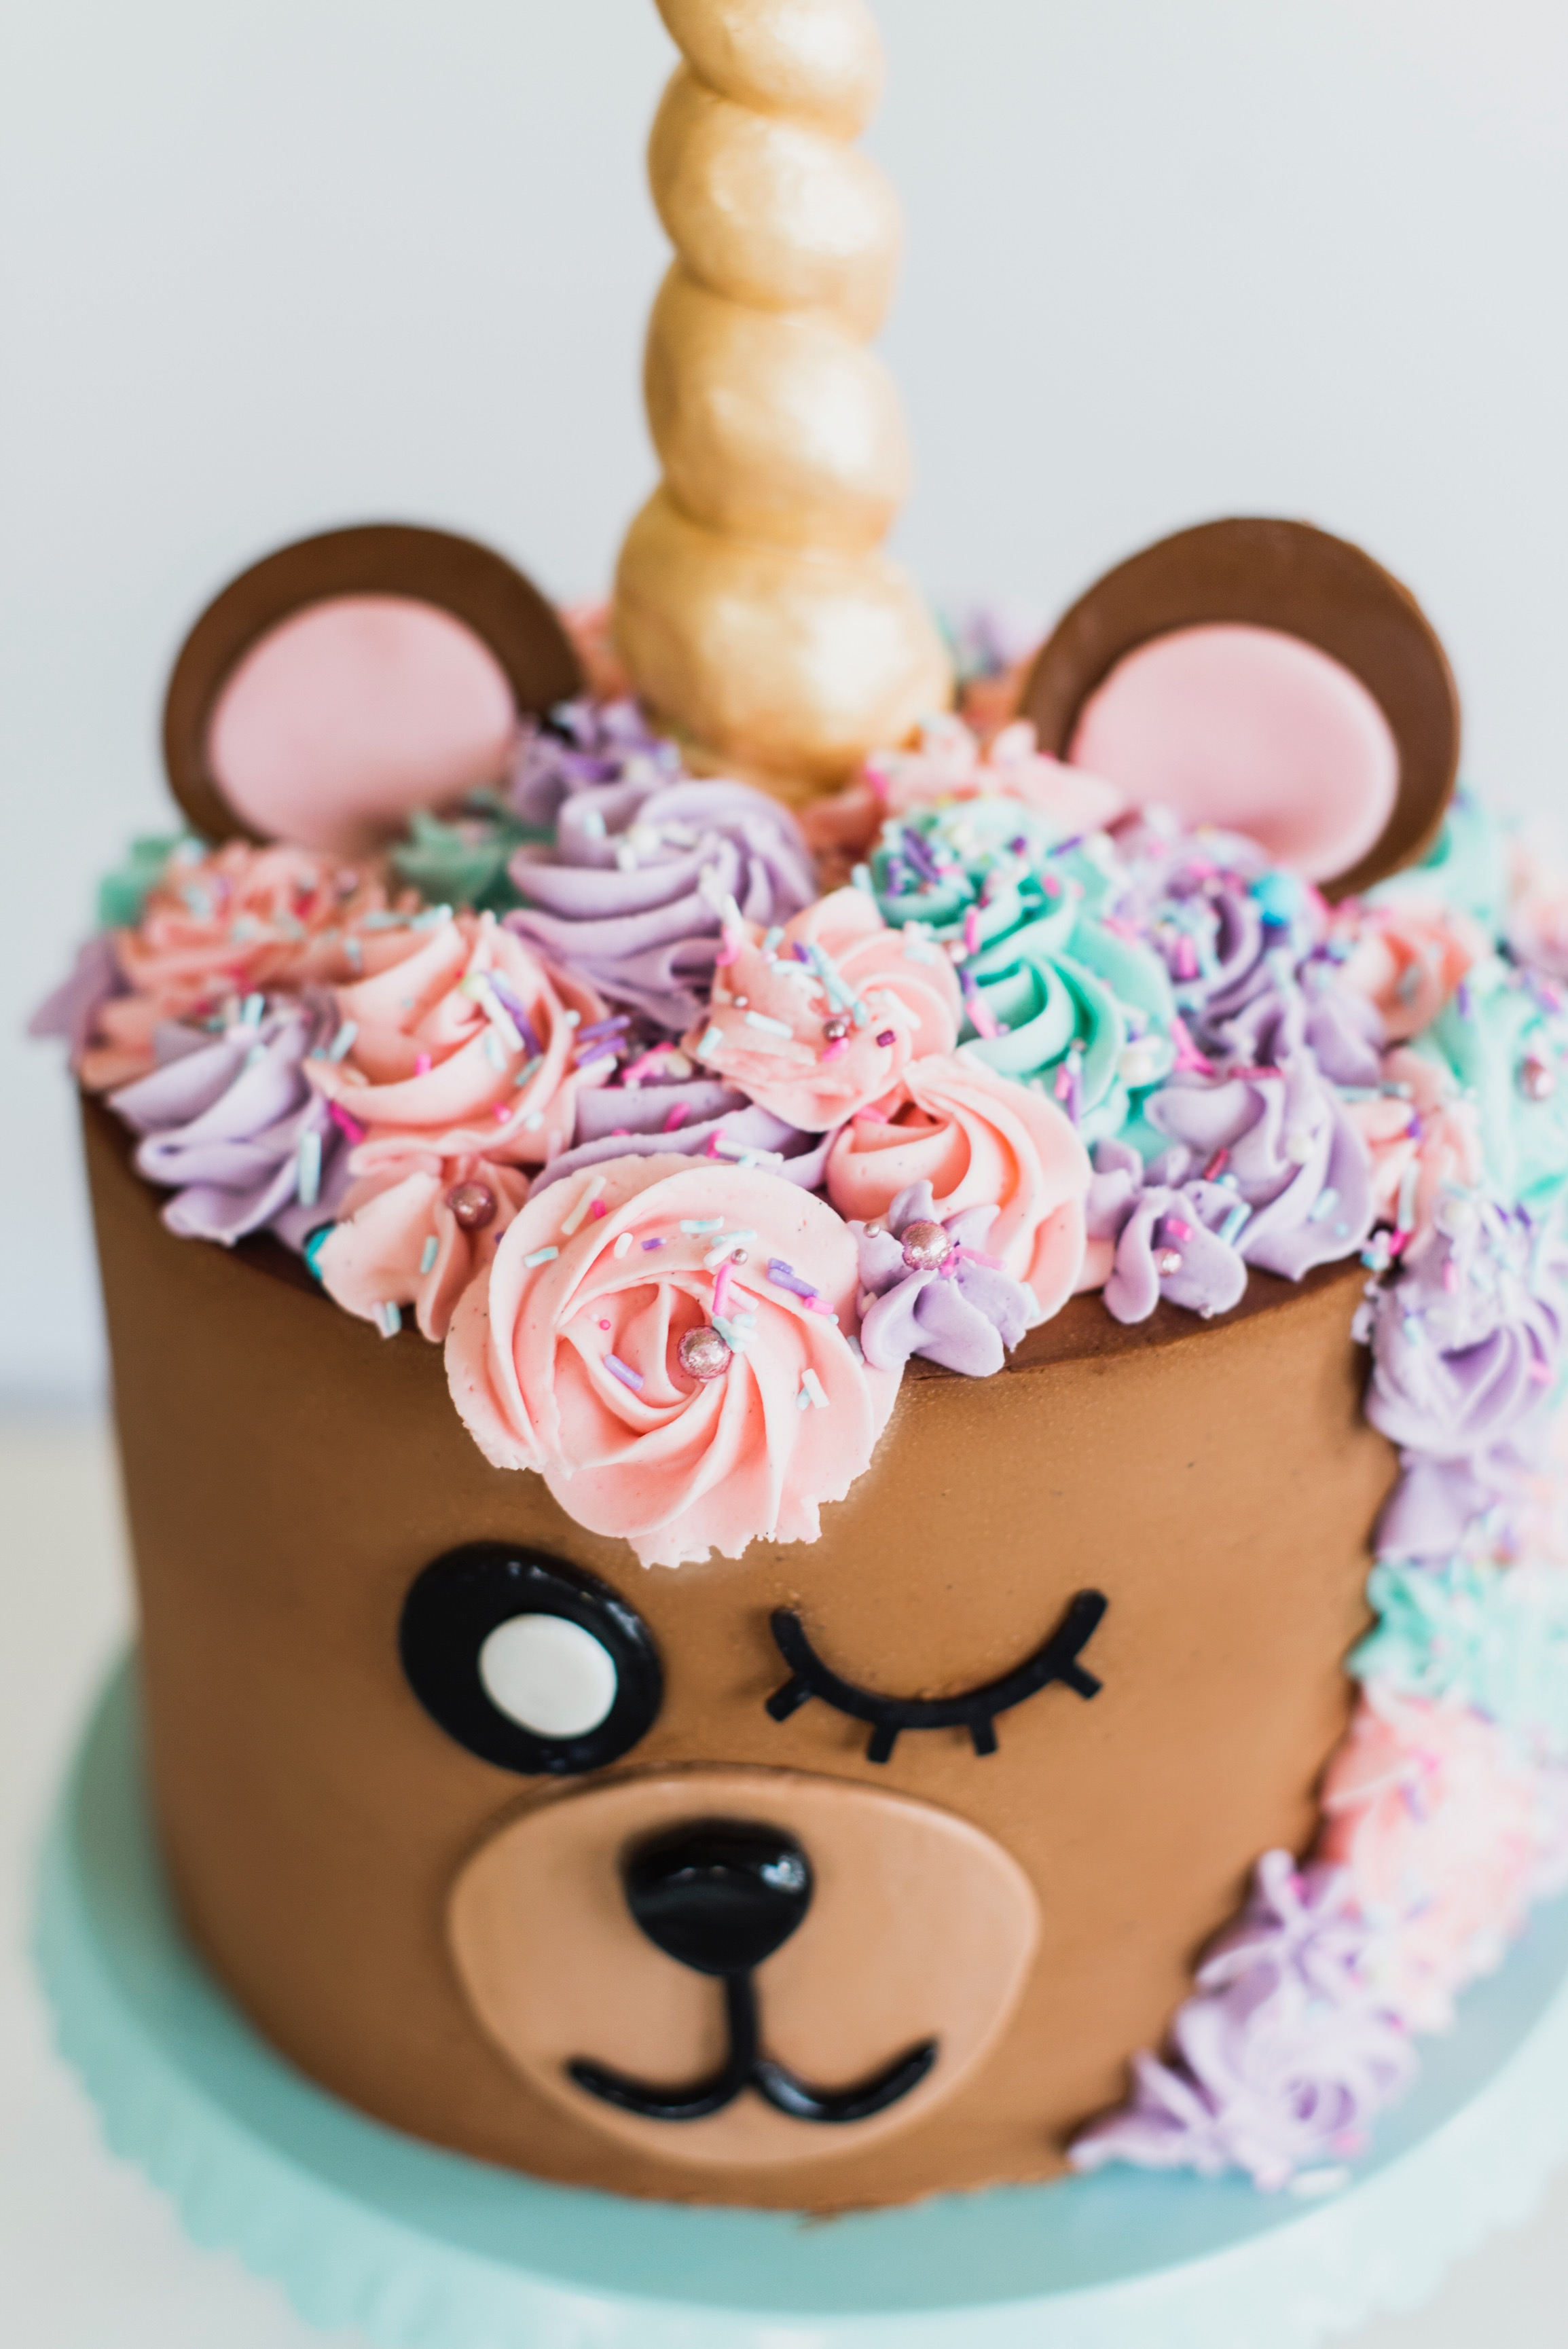 Swell 4 Easy And Cute Animal Themed Cakes Cake By Courtney Funny Birthday Cards Online Alyptdamsfinfo